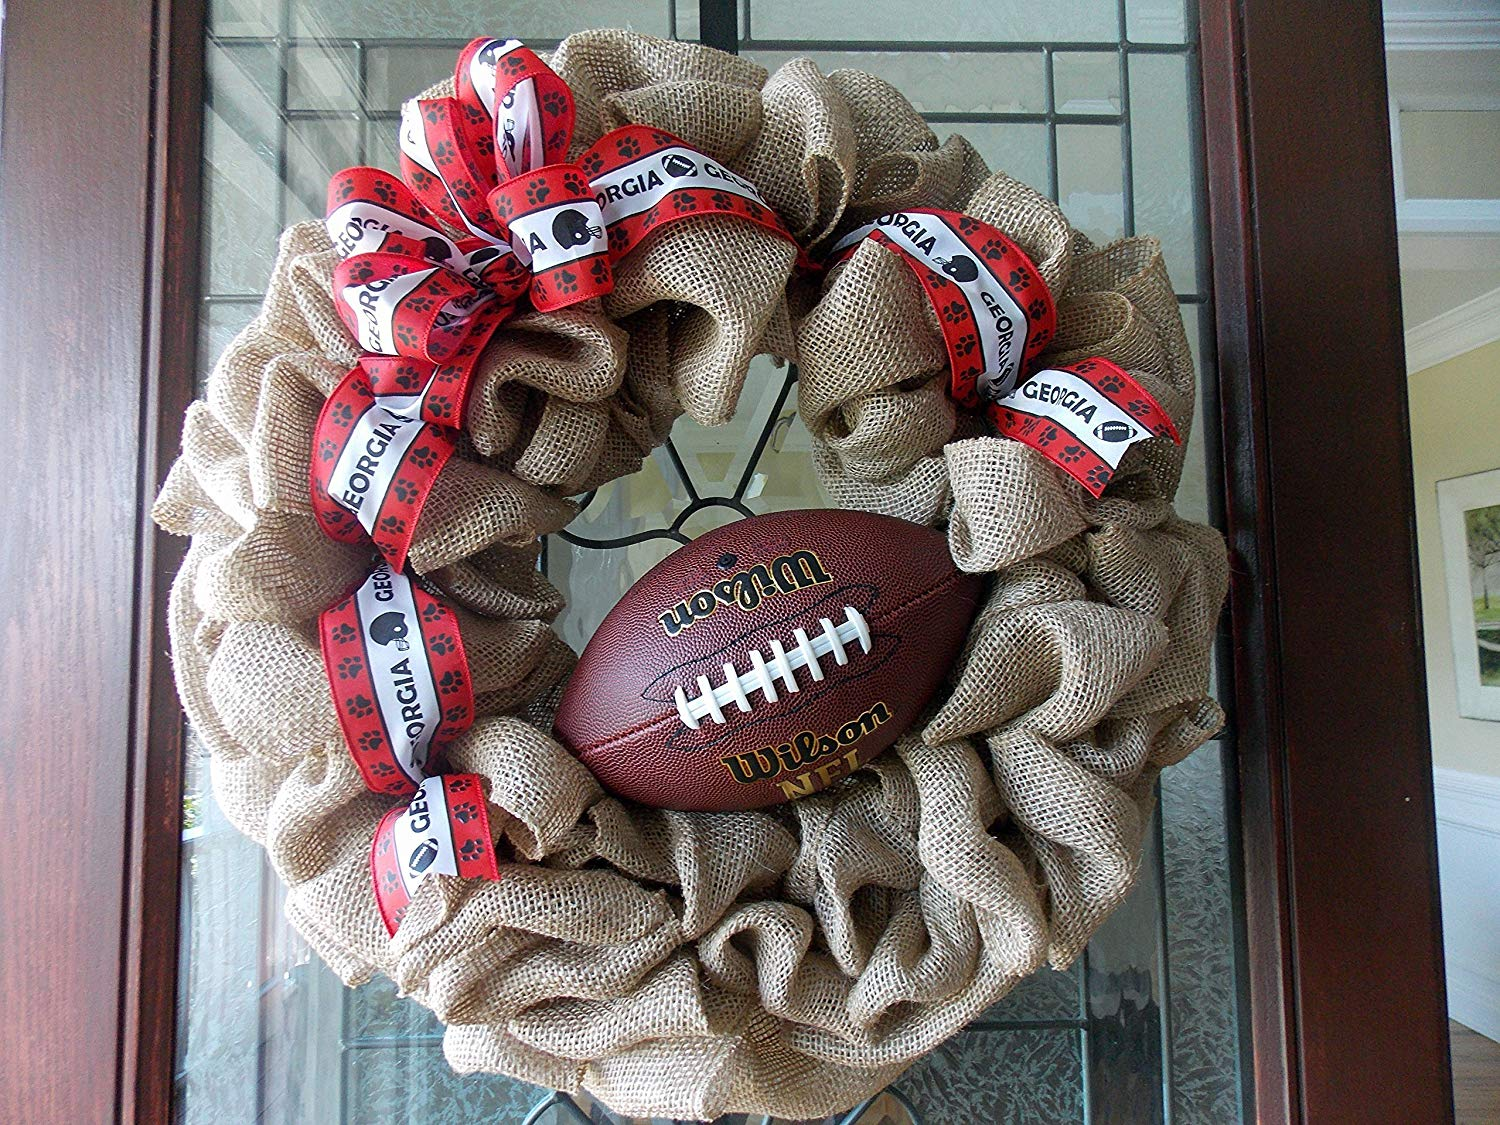 UGA Football Wreath-UGA Wreath-Bulldog Wreath-Football Wreath-Fall Football Wreath-Fall Wreaths for Front Door-Fall Burlap Wreath-Football